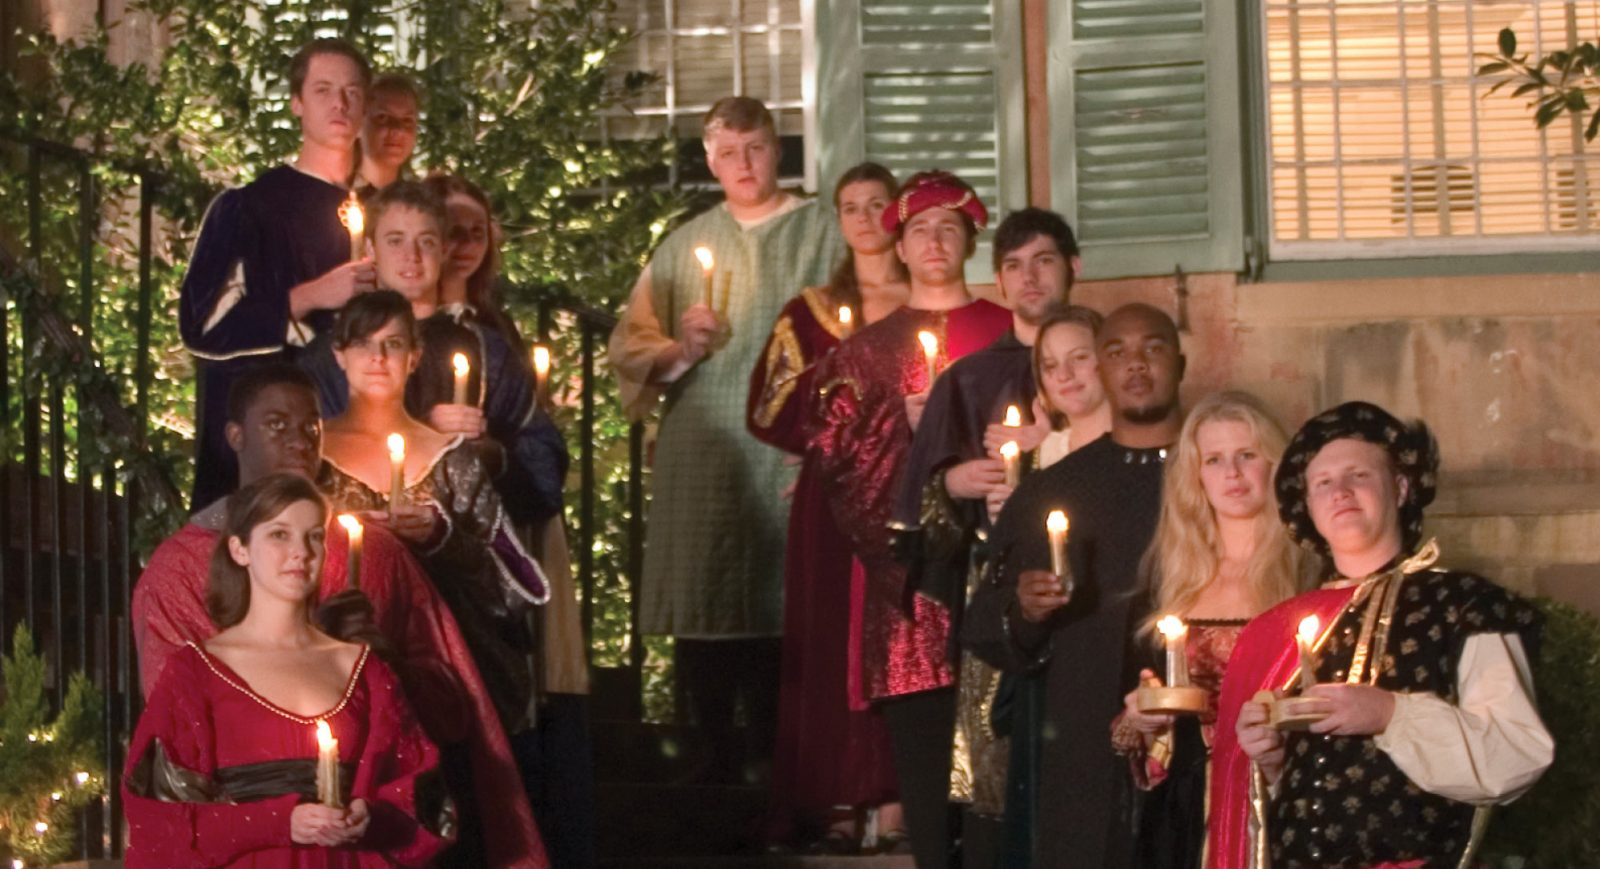 CofC Madrigal Feast pic website